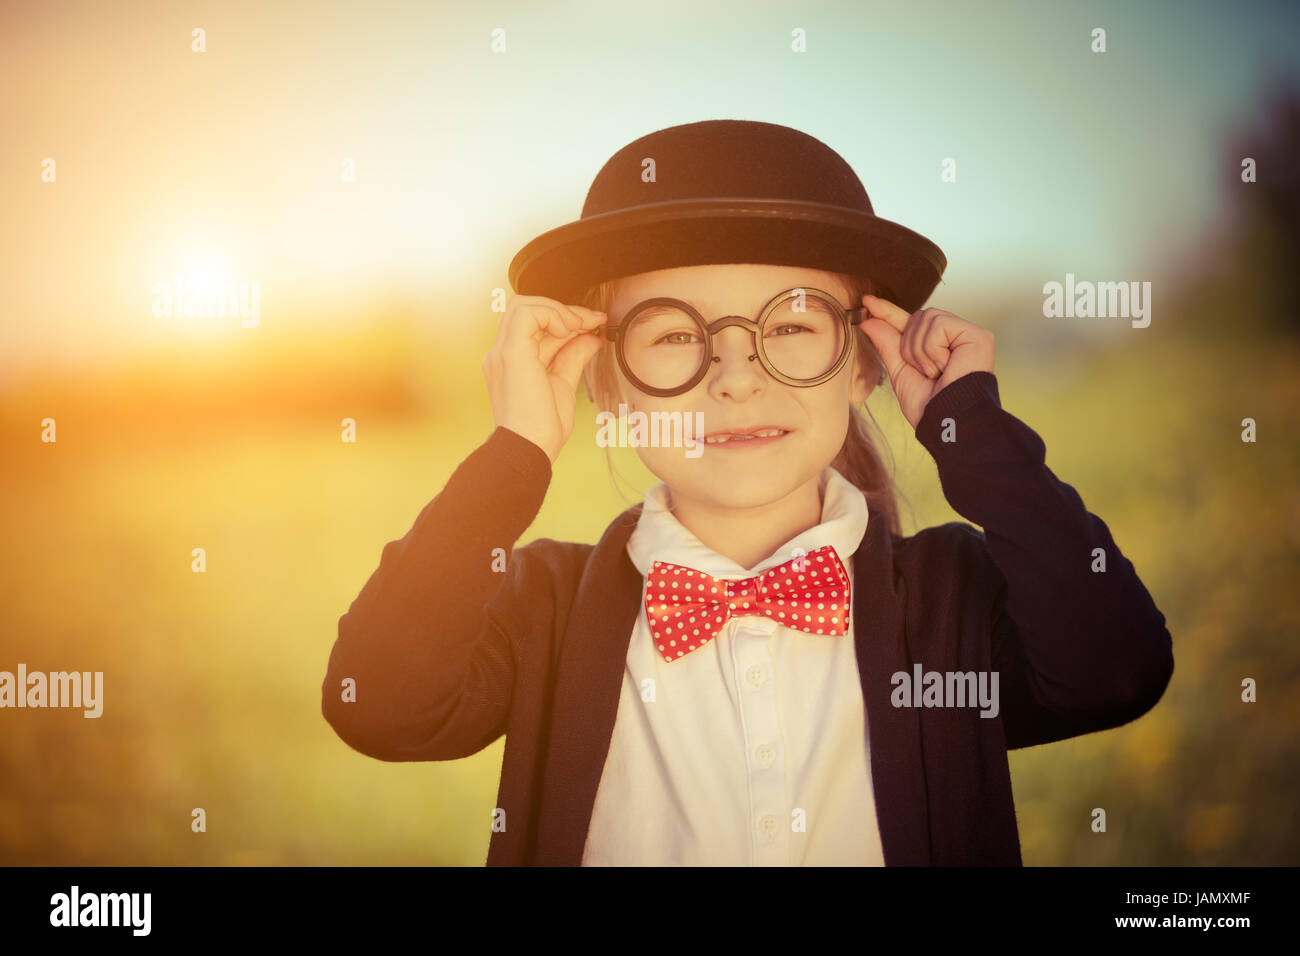 Funny little girl in glasses, bow tie and bowler hat. - Stock Image